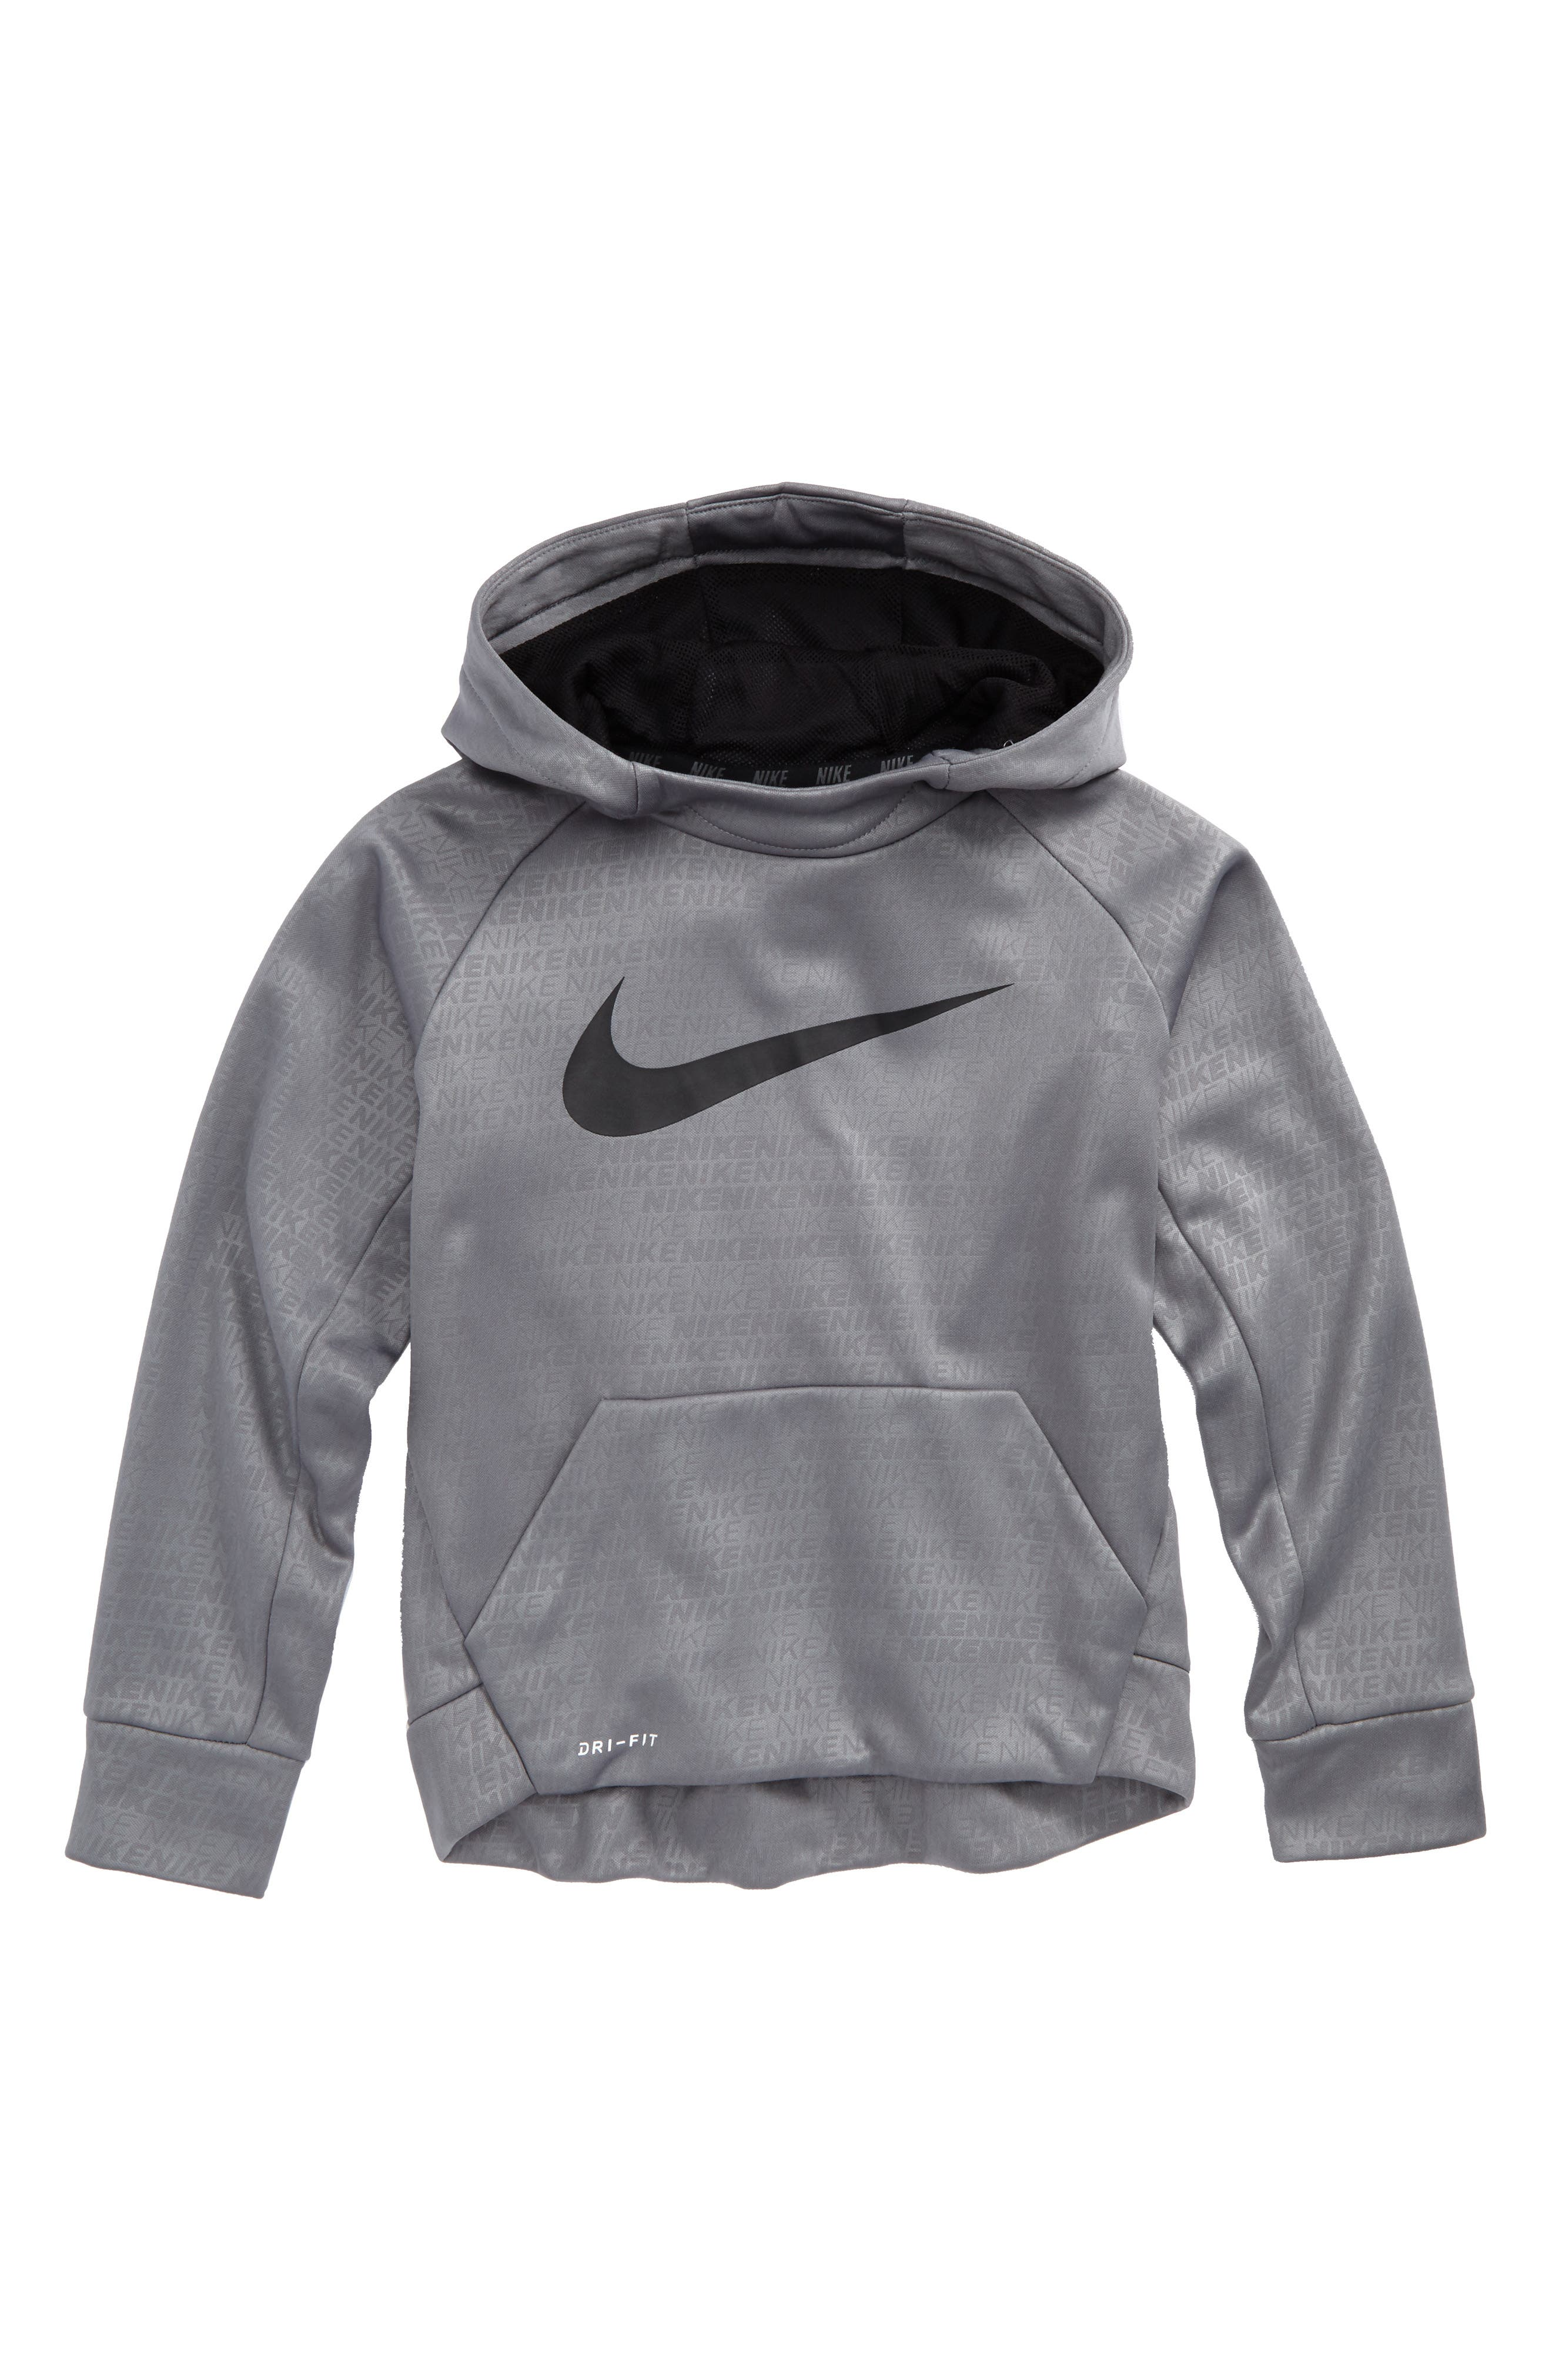 Nike Logo Graphic Hoodie (Toddler Boys & Little Boys)